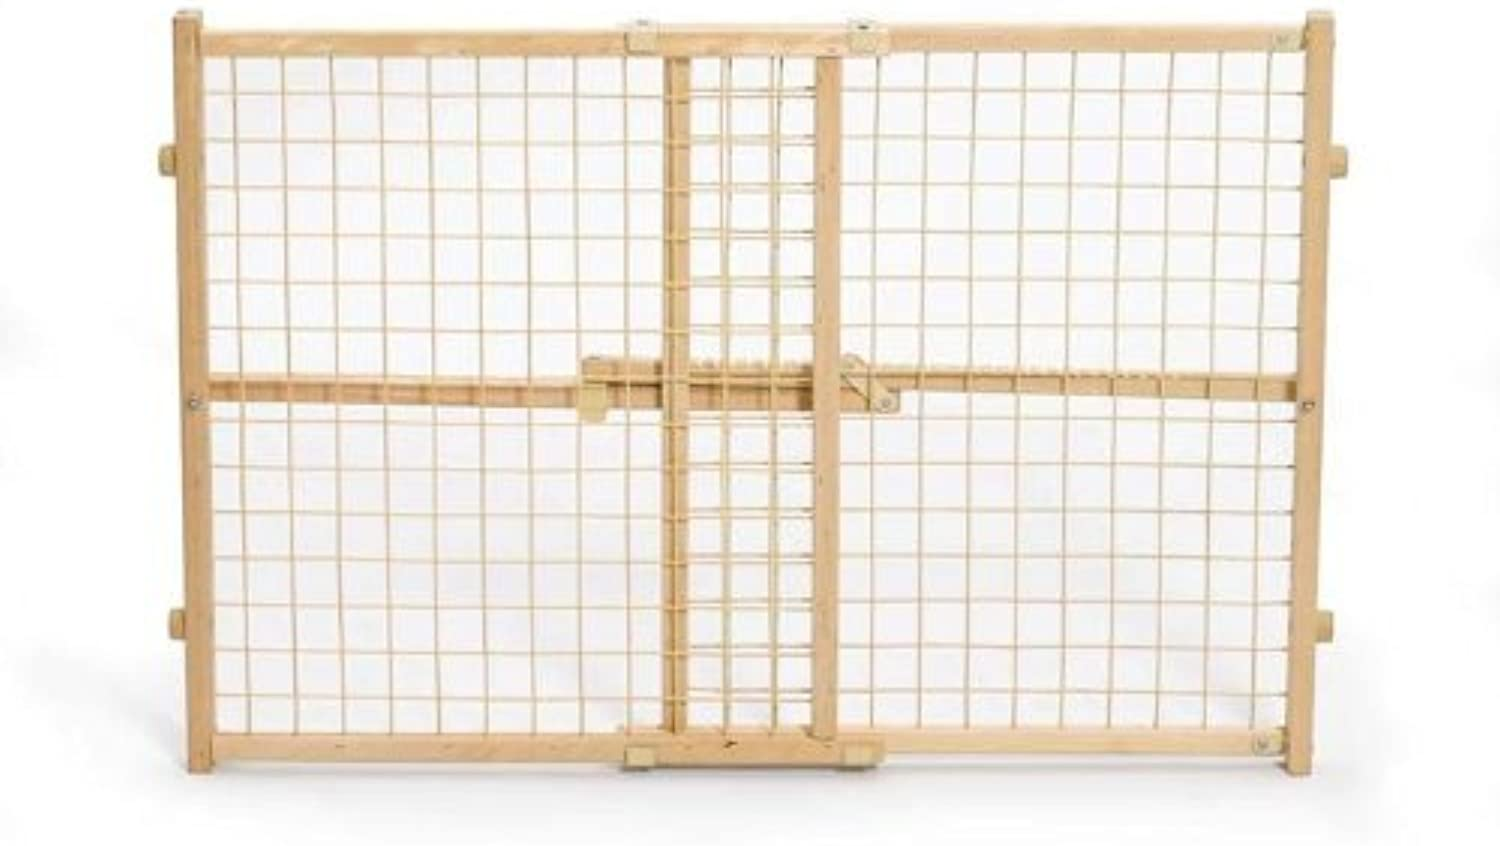 MidWest Wire Mesh Pet Gate, 26 Inches to 41 Inches wide by 24 Inches Tall by MidWest Homes for Pets